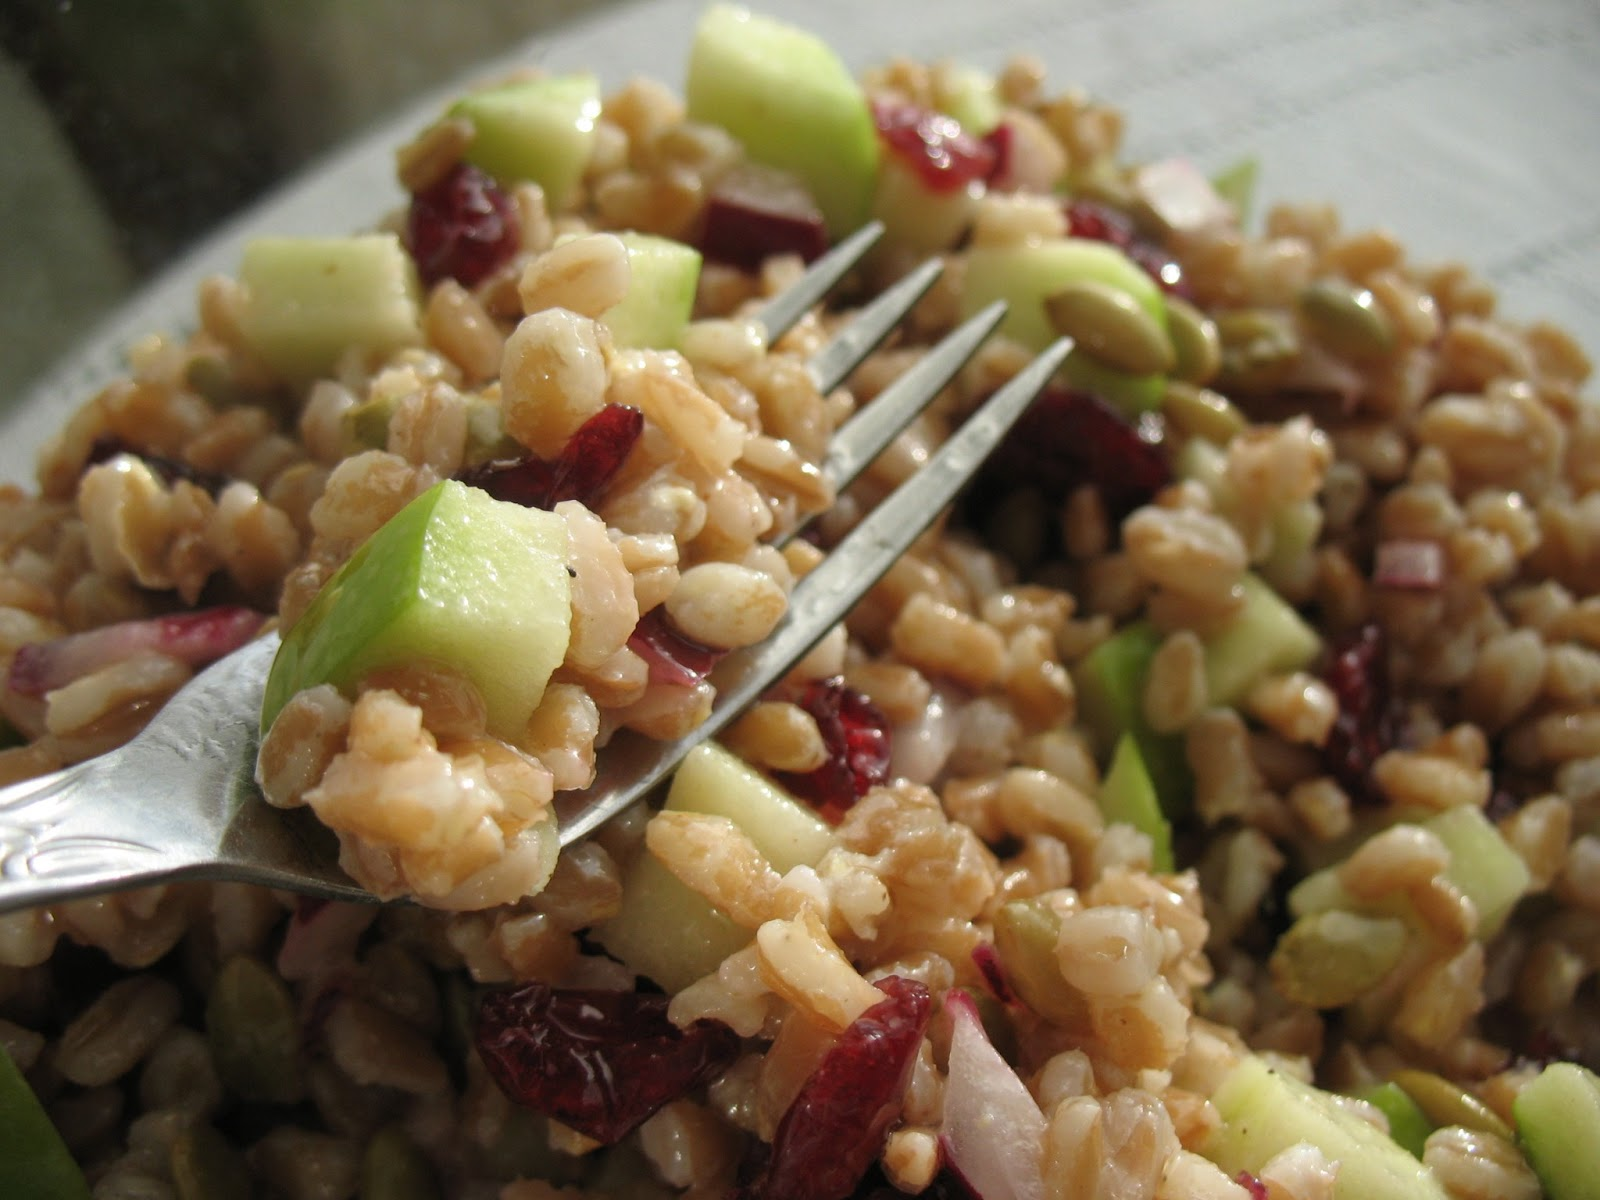 Farro+Salad+with+Apple+2.jpg